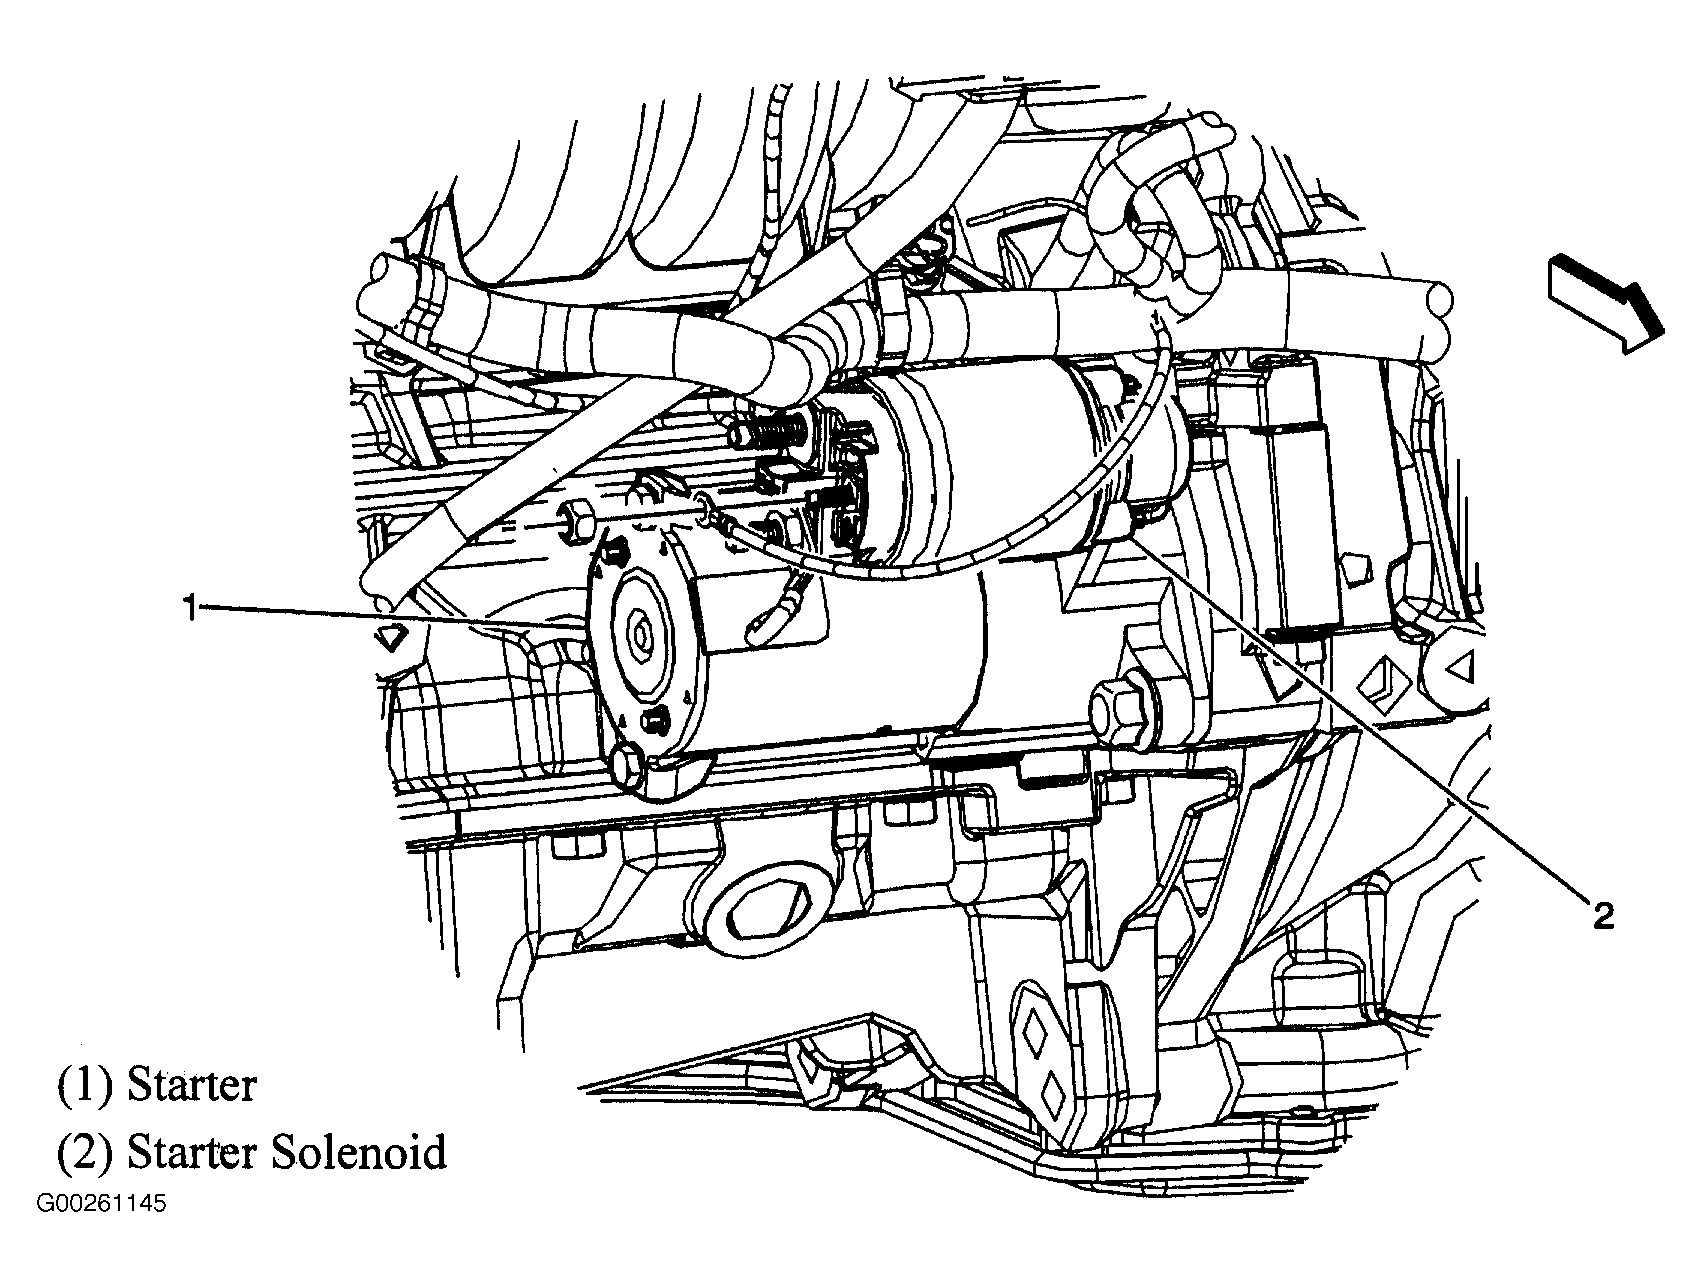 2008 chevy malibu engine diagram diagram likewise cooling